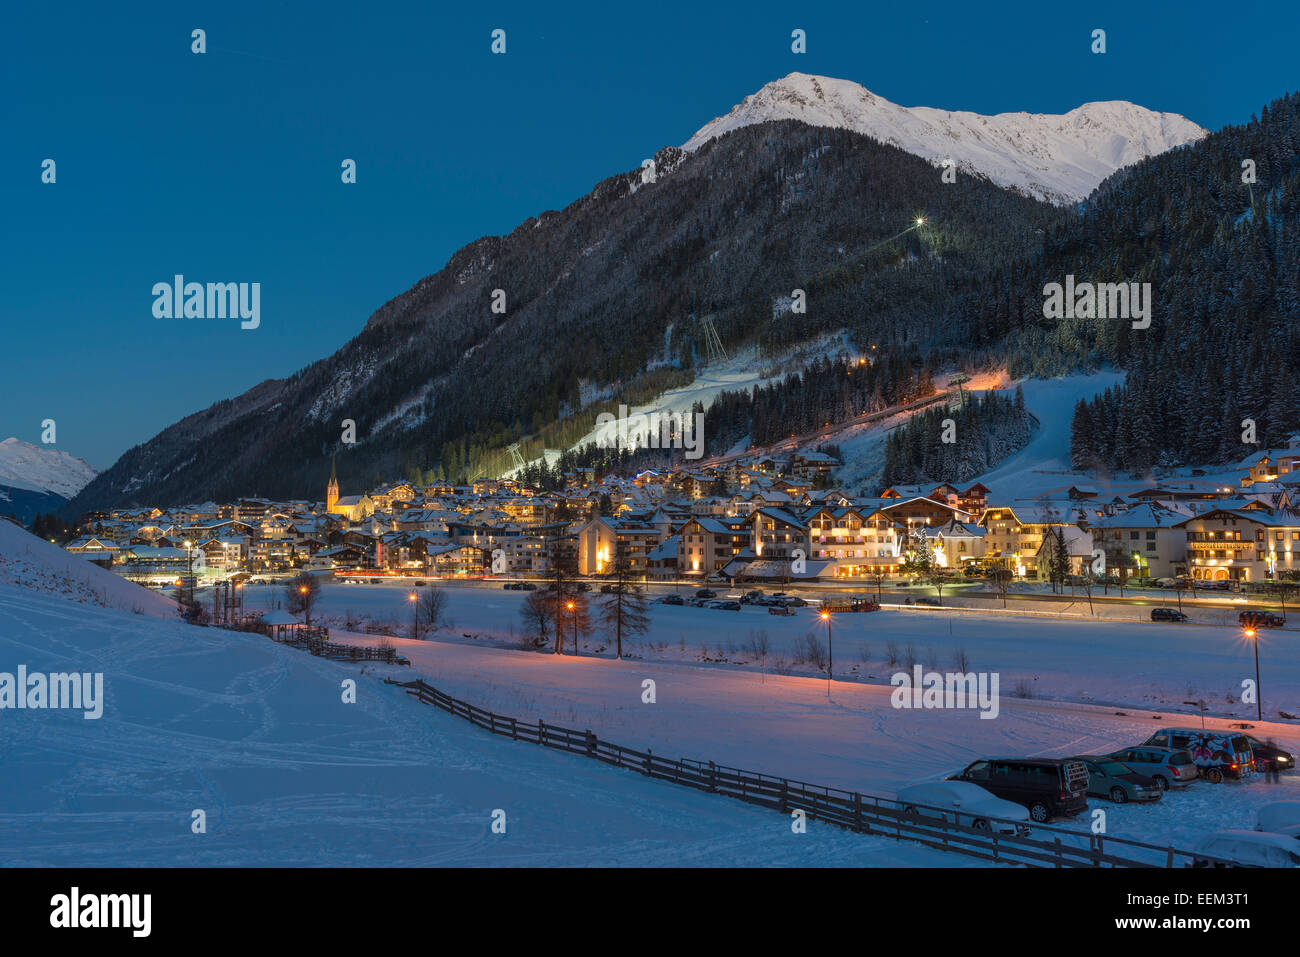 View of Ischgl, winter sports centre at night, Ischgl, Paznaun Valley, Tyrol, Austria - Stock Image